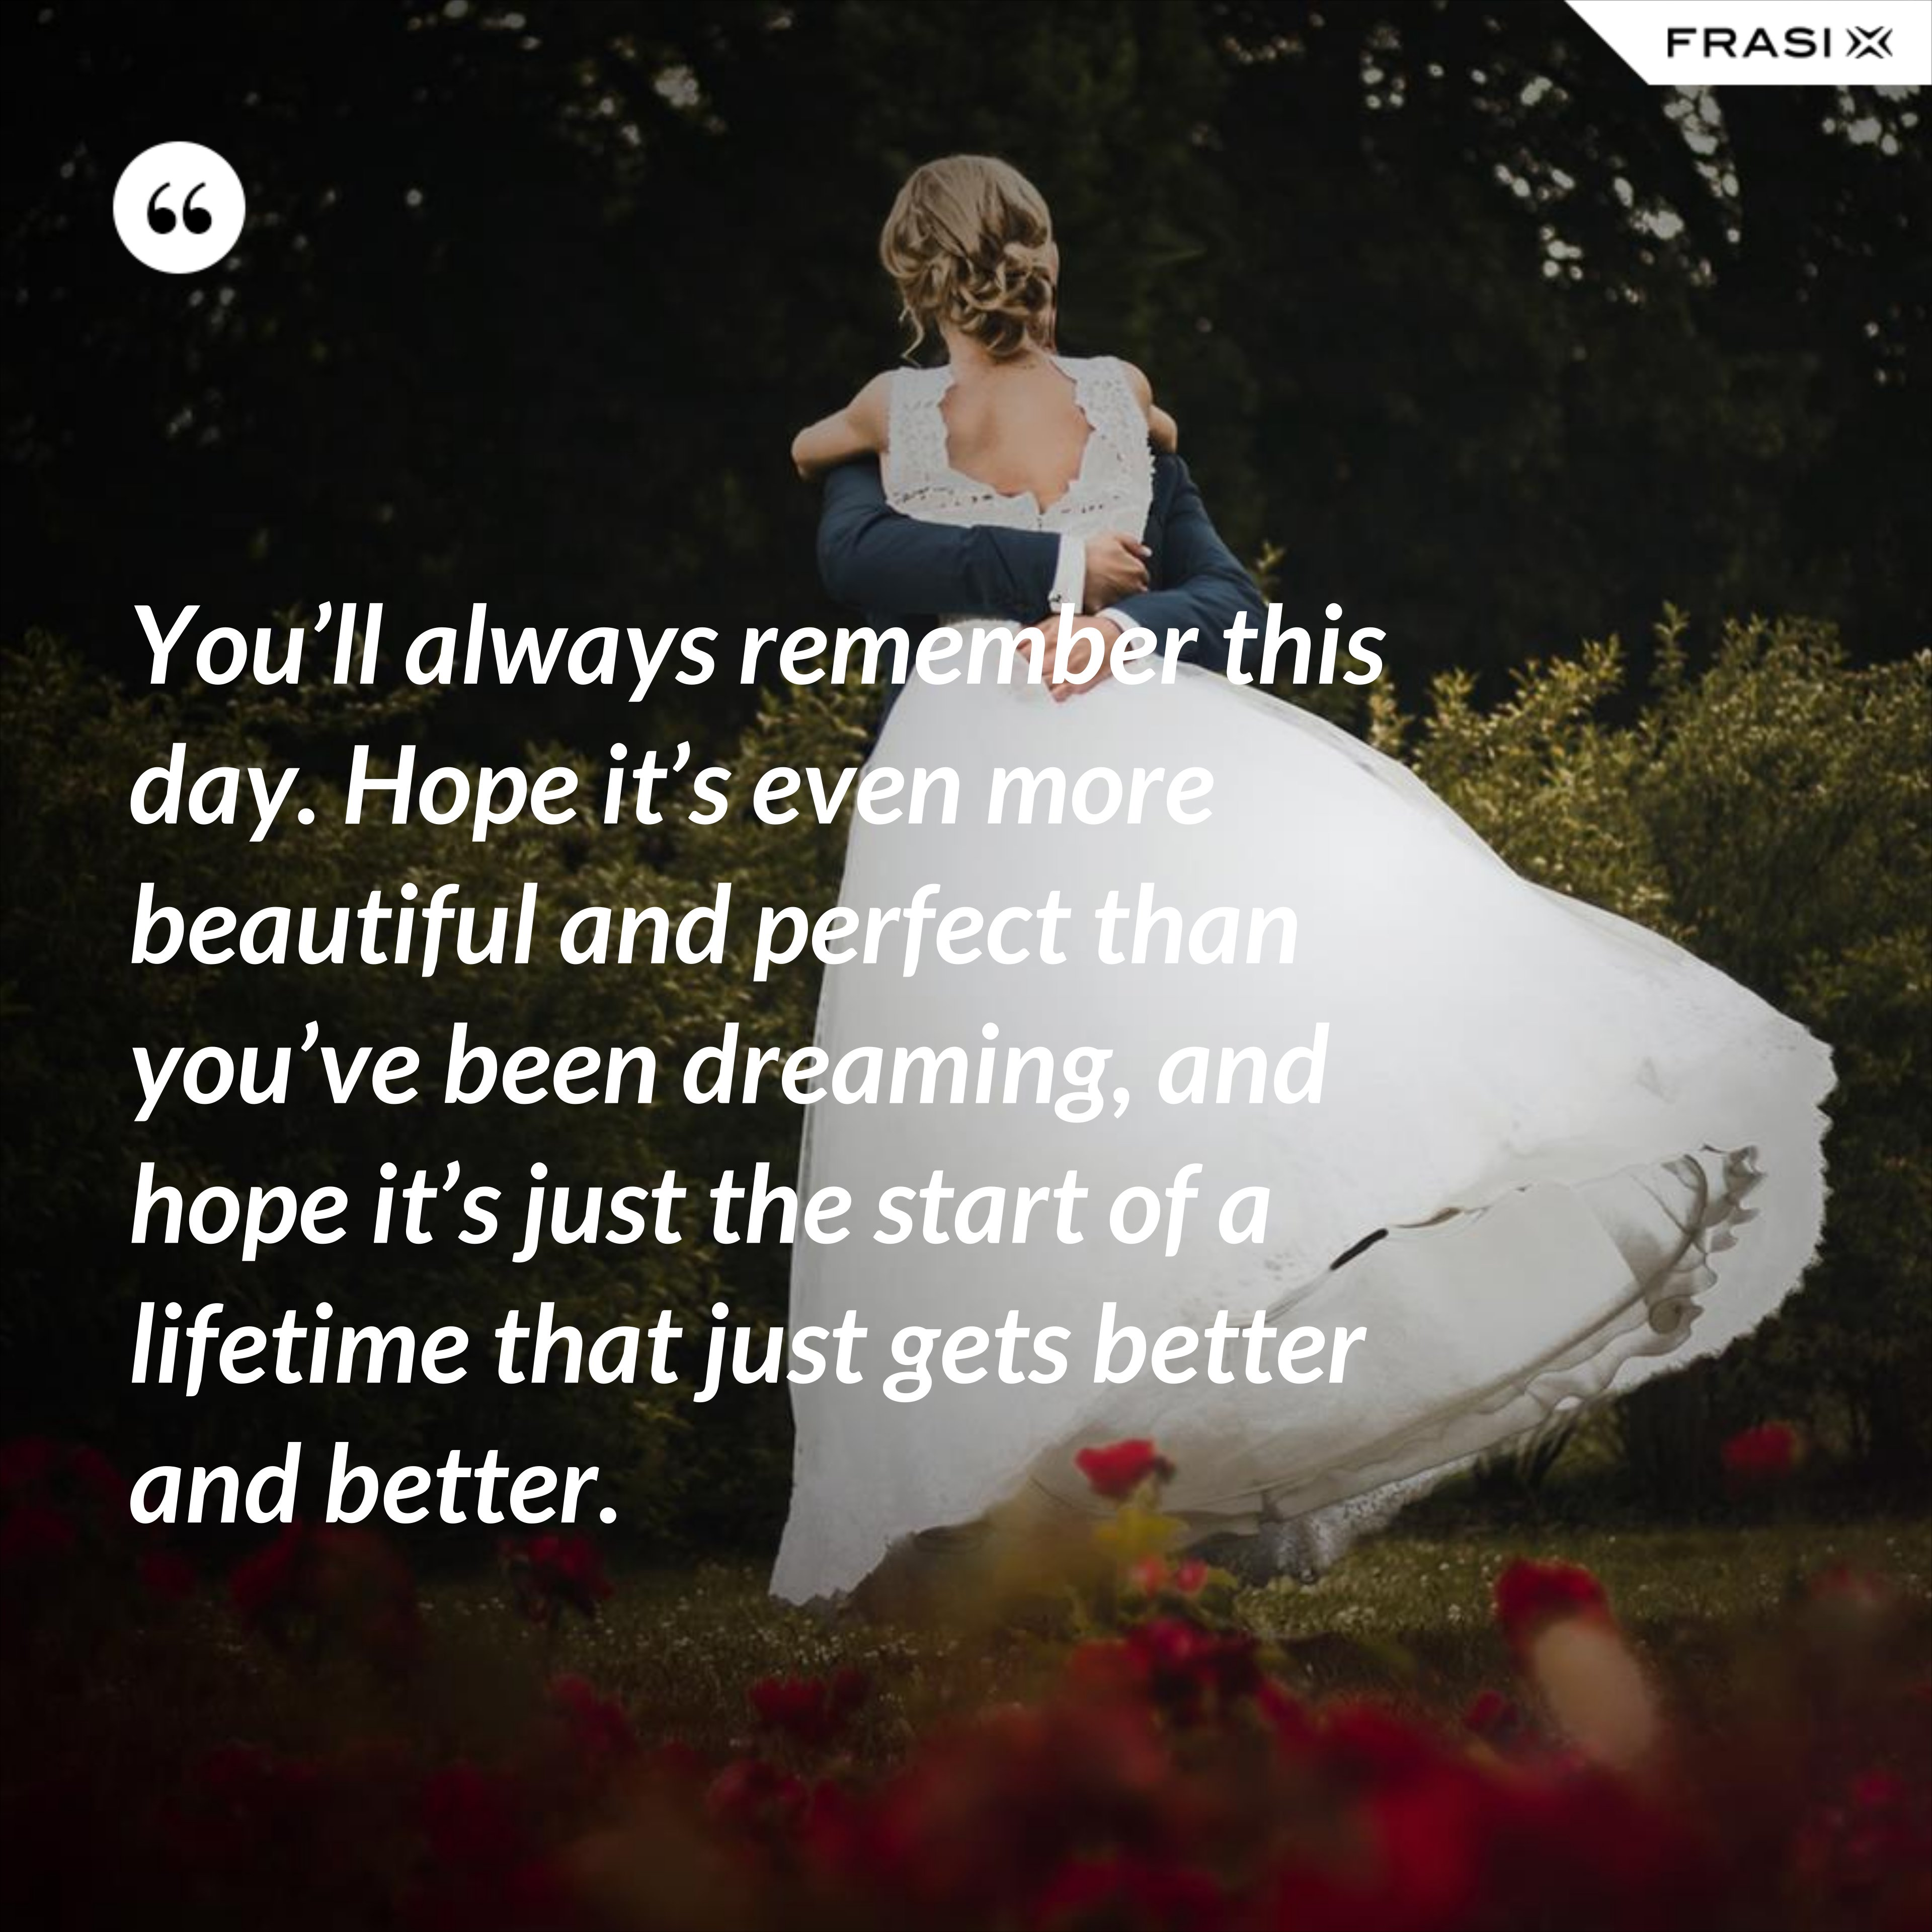 You'll always remember this day. Hope it's even more beautiful and perfect than you've been dreaming, and hope it's just the start of a lifetime that just gets better and better. - Anonimo